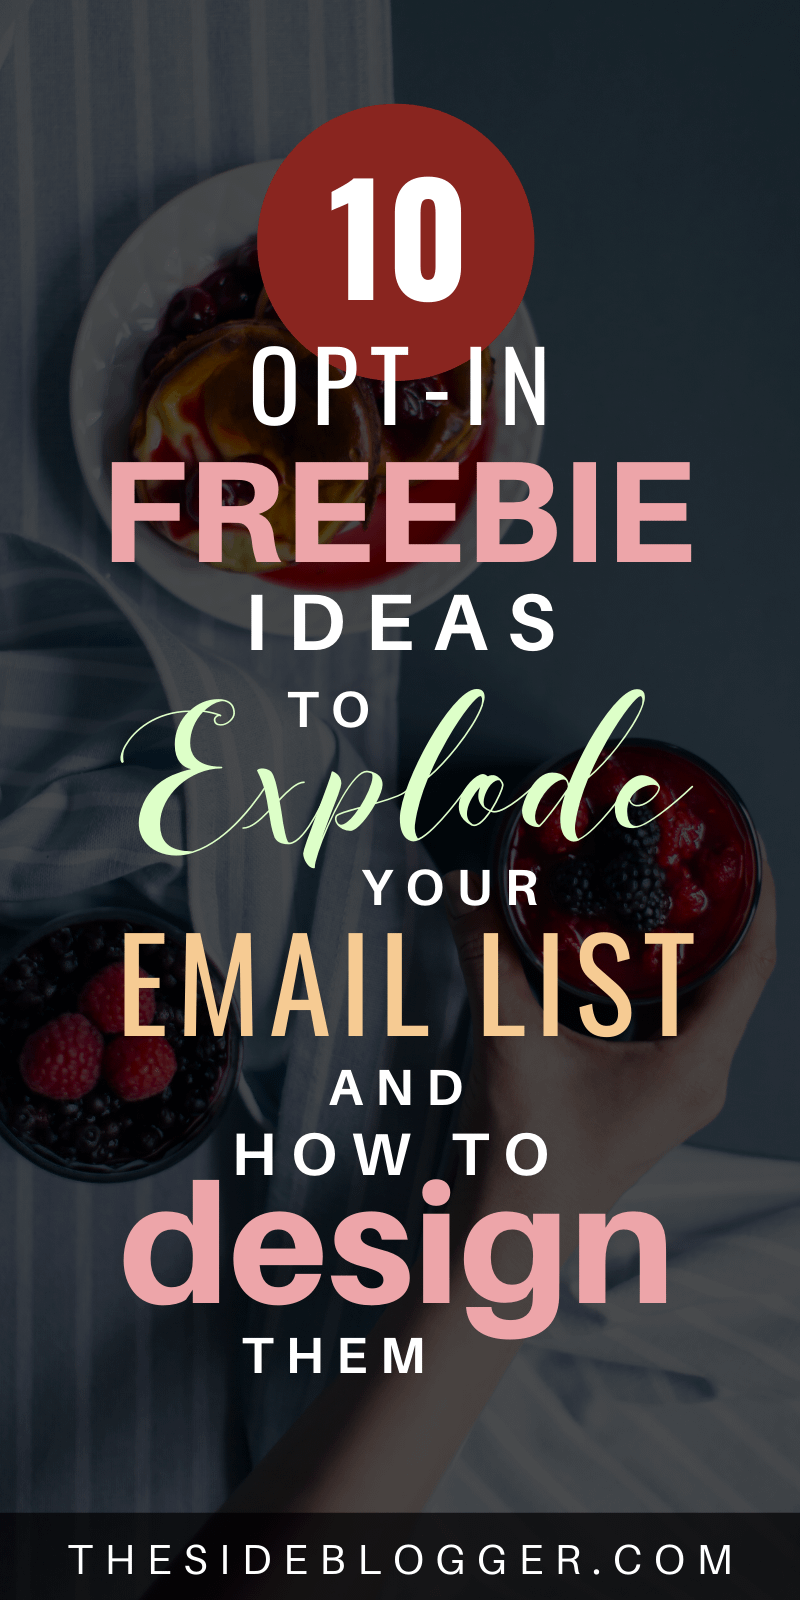 10 opt-in freebie ideas for exploding your email list, and detailed tutorials for how to create each of these freebies to attract your ideal audience to sign up for your email list. #emaillist #optin #freebies #listbuilding #blogging #bloggingforbeginners #beginnerbloggers